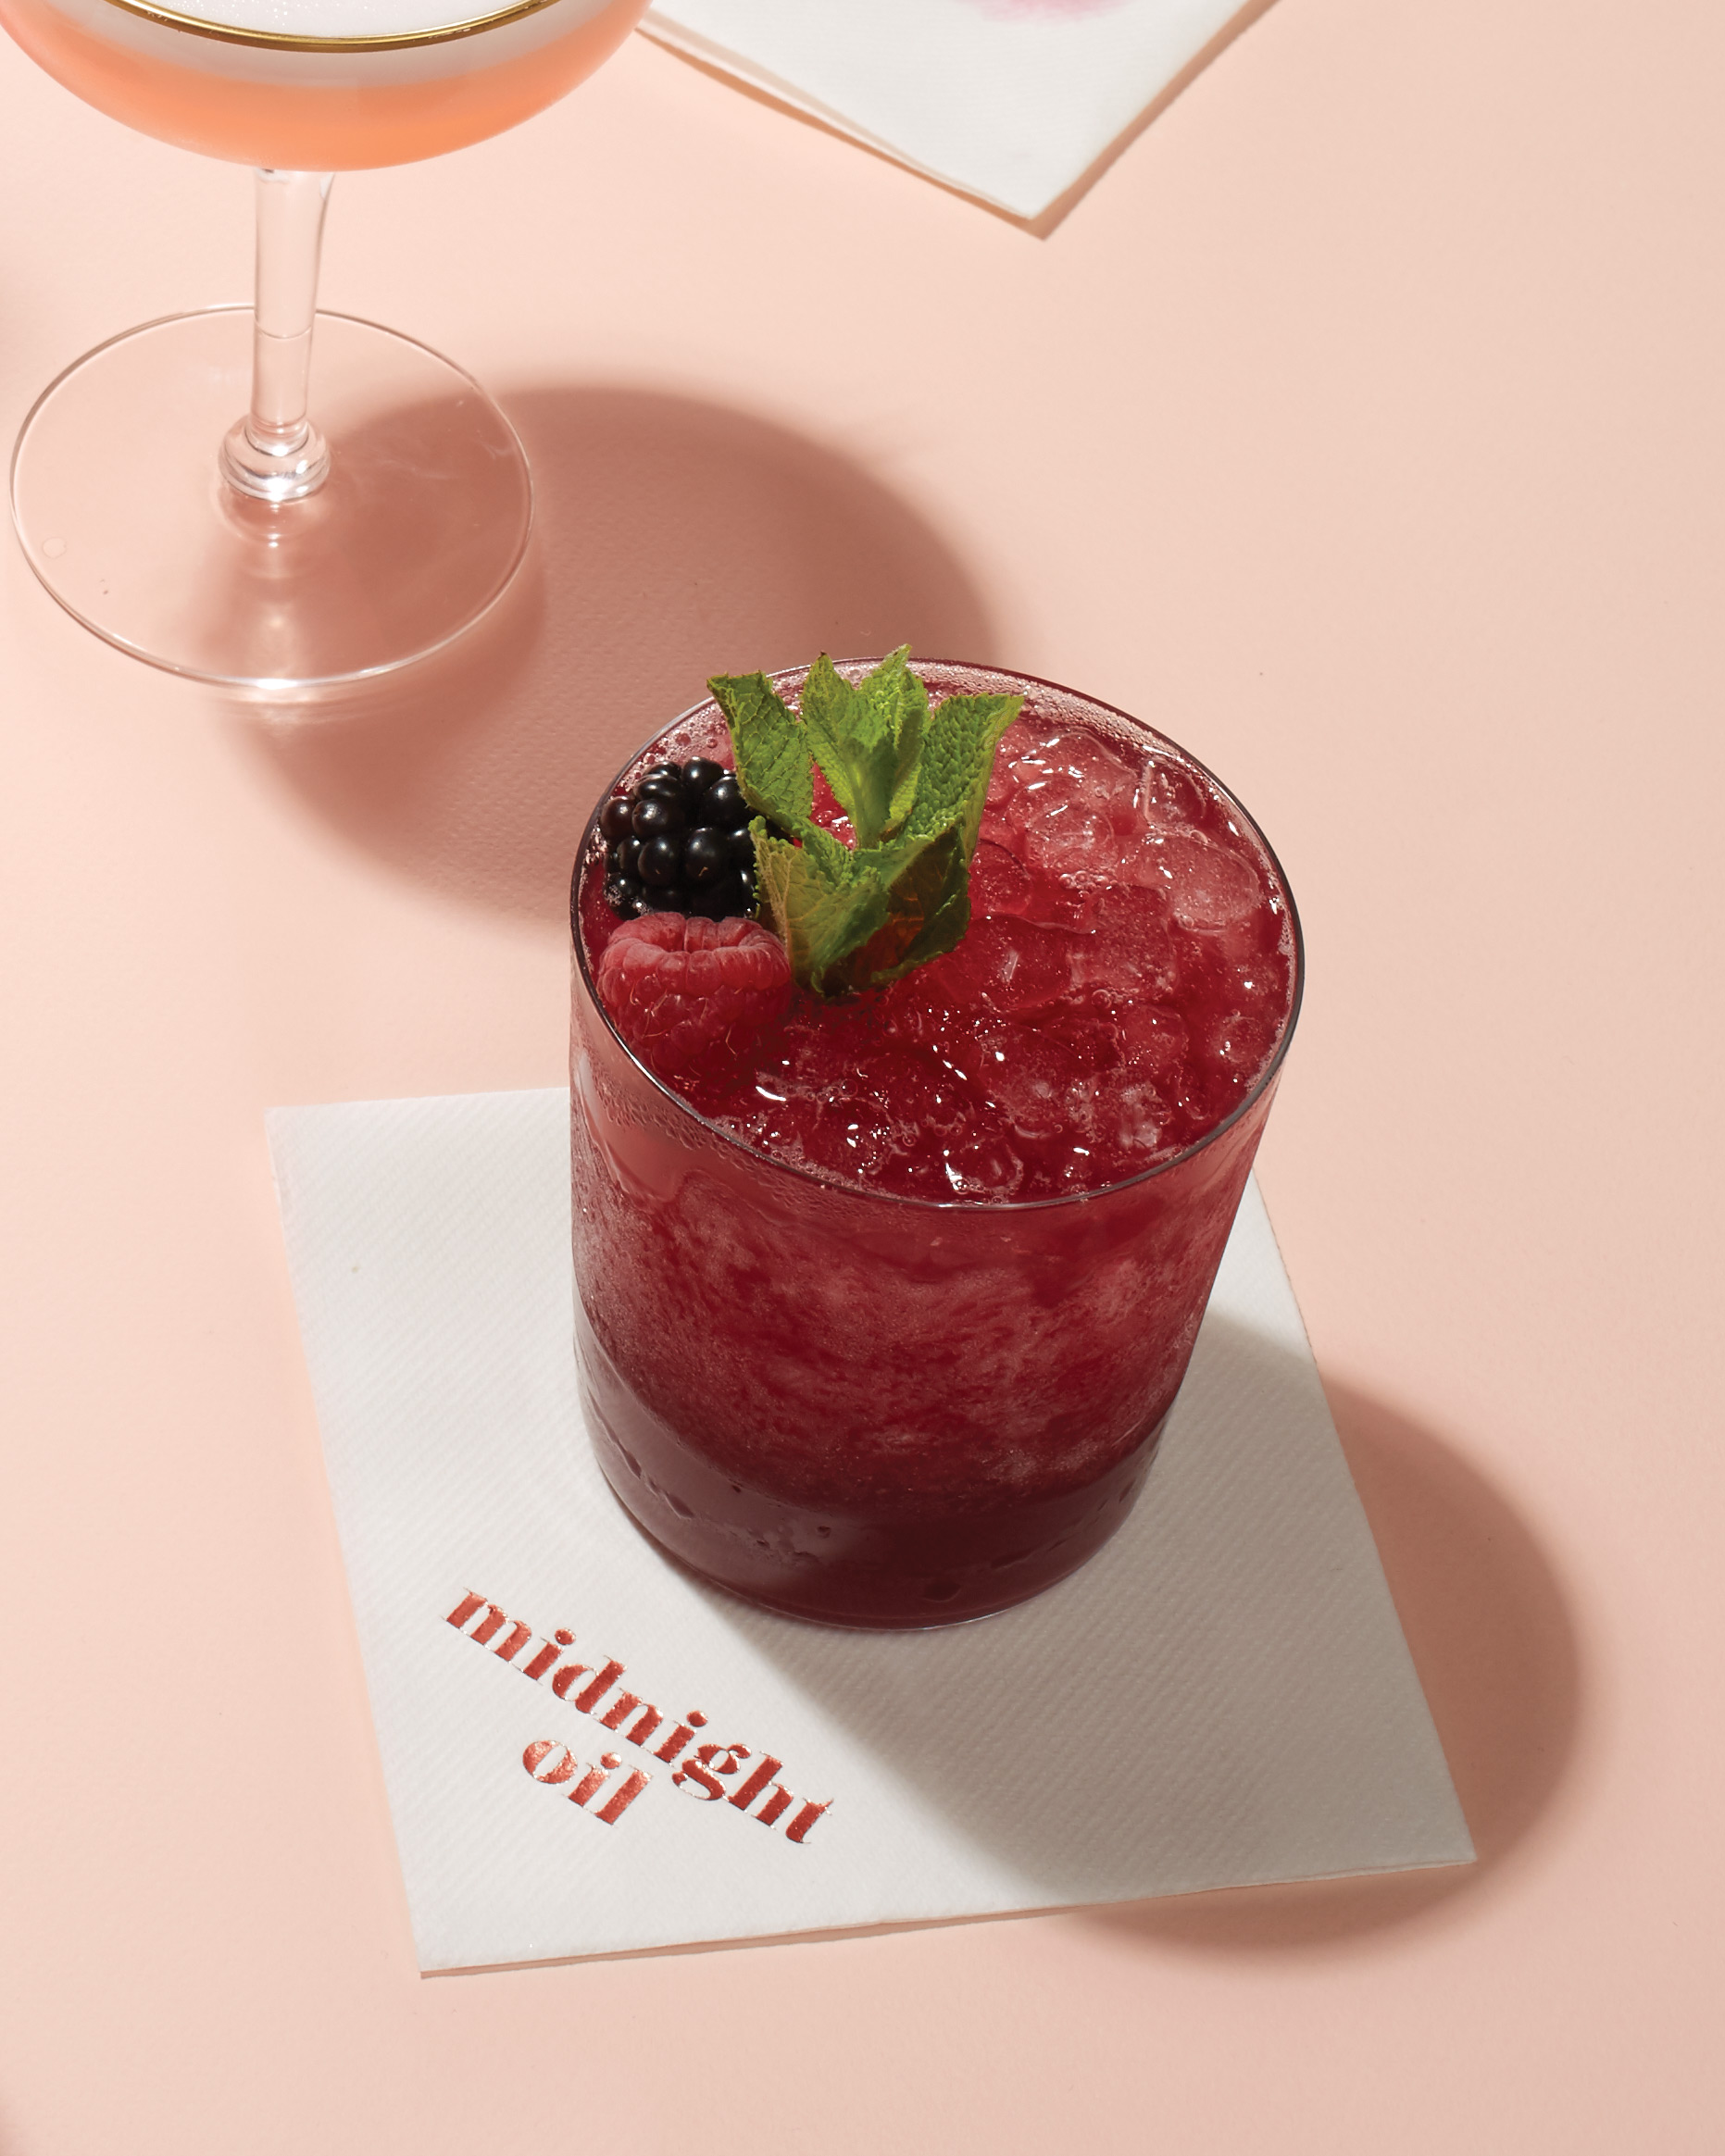 blush-berry-cocktails-midnight-oil-port-of-call-047-d113029.jpg